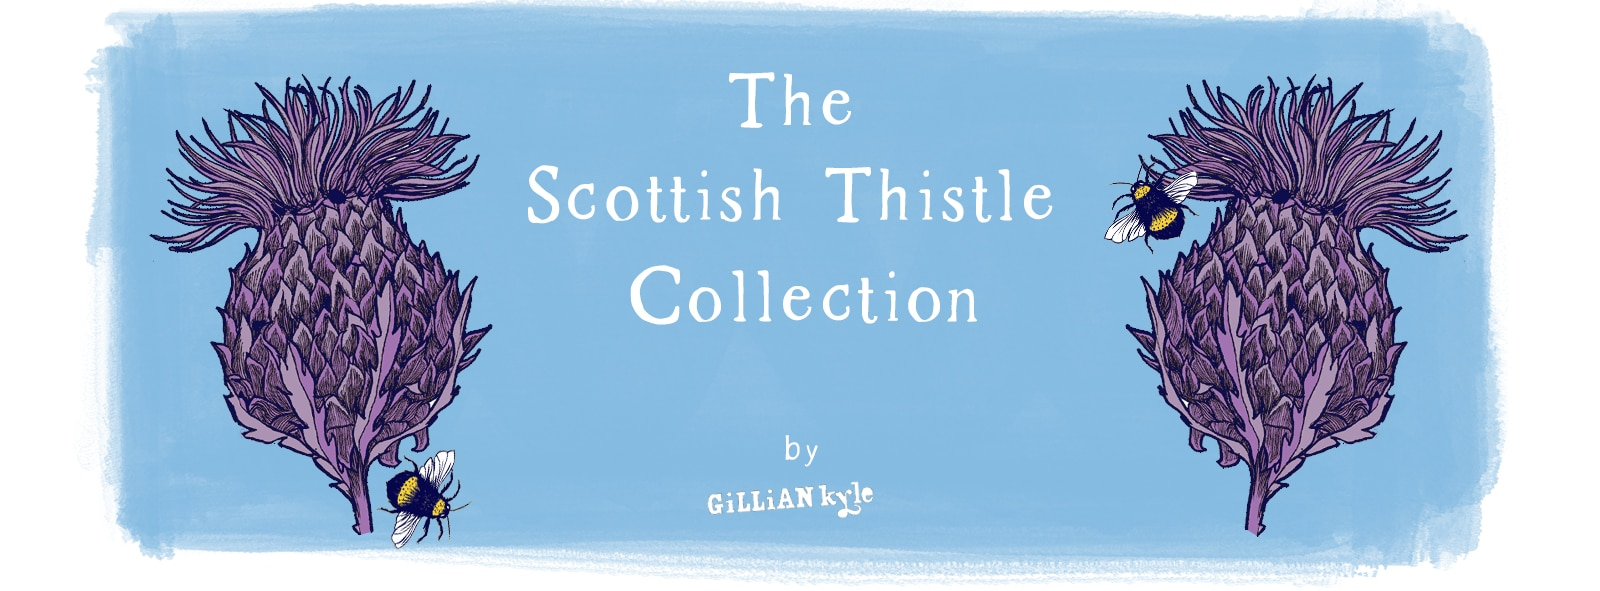 Scottish Thistle illustration by Gillian Kyle